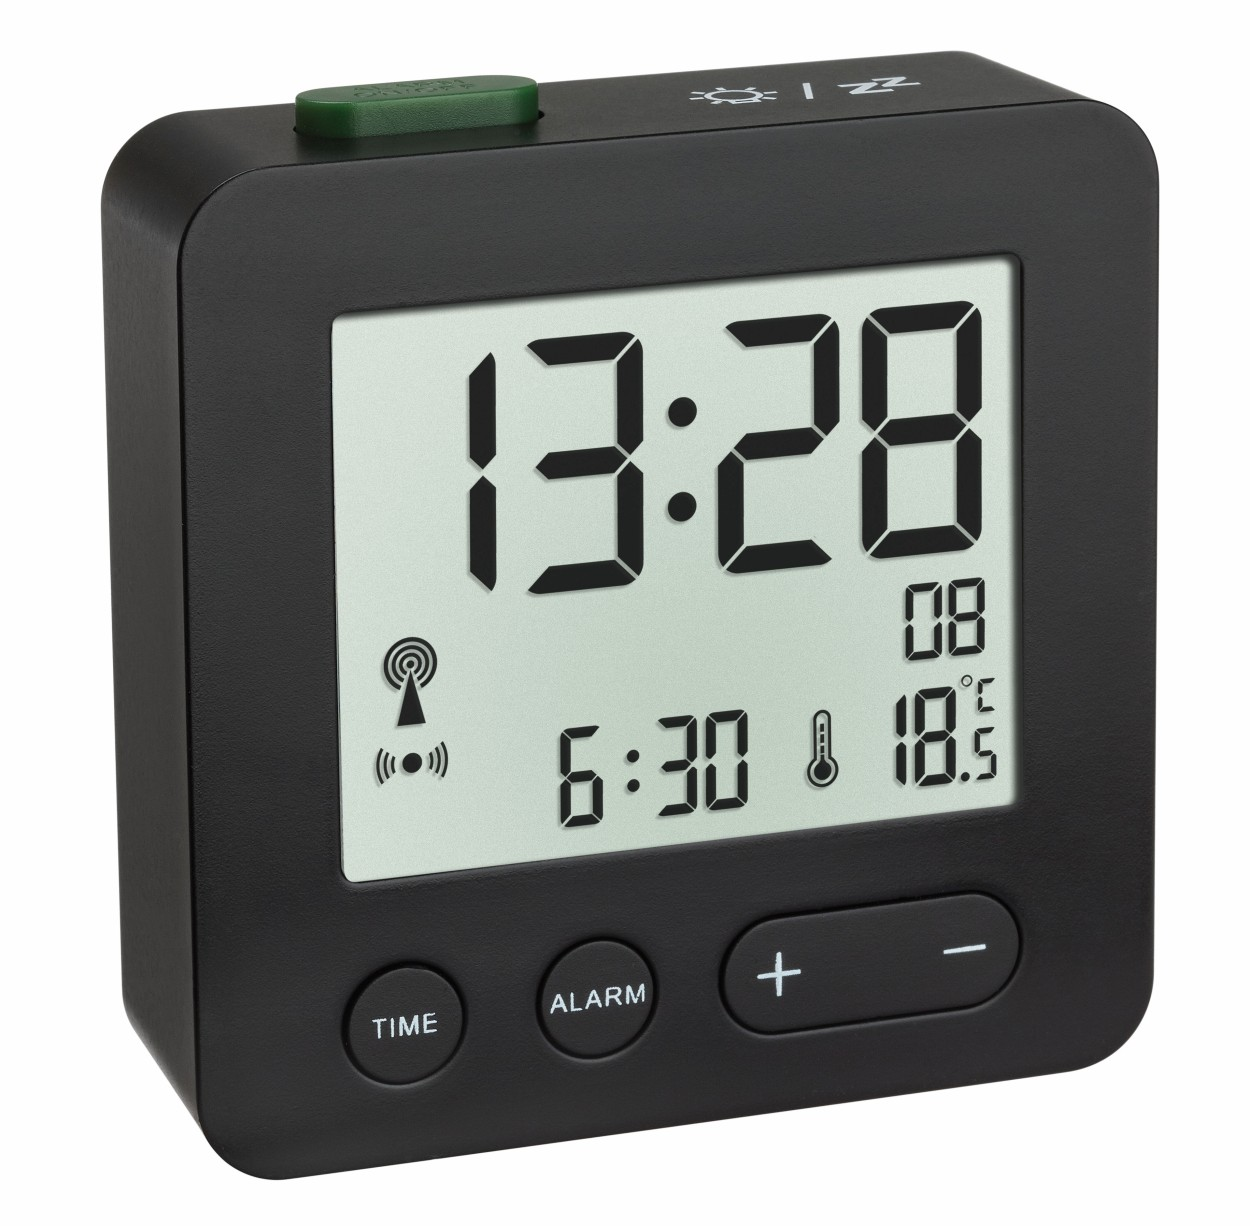 TFA Radio controlled alarm clock with temperature